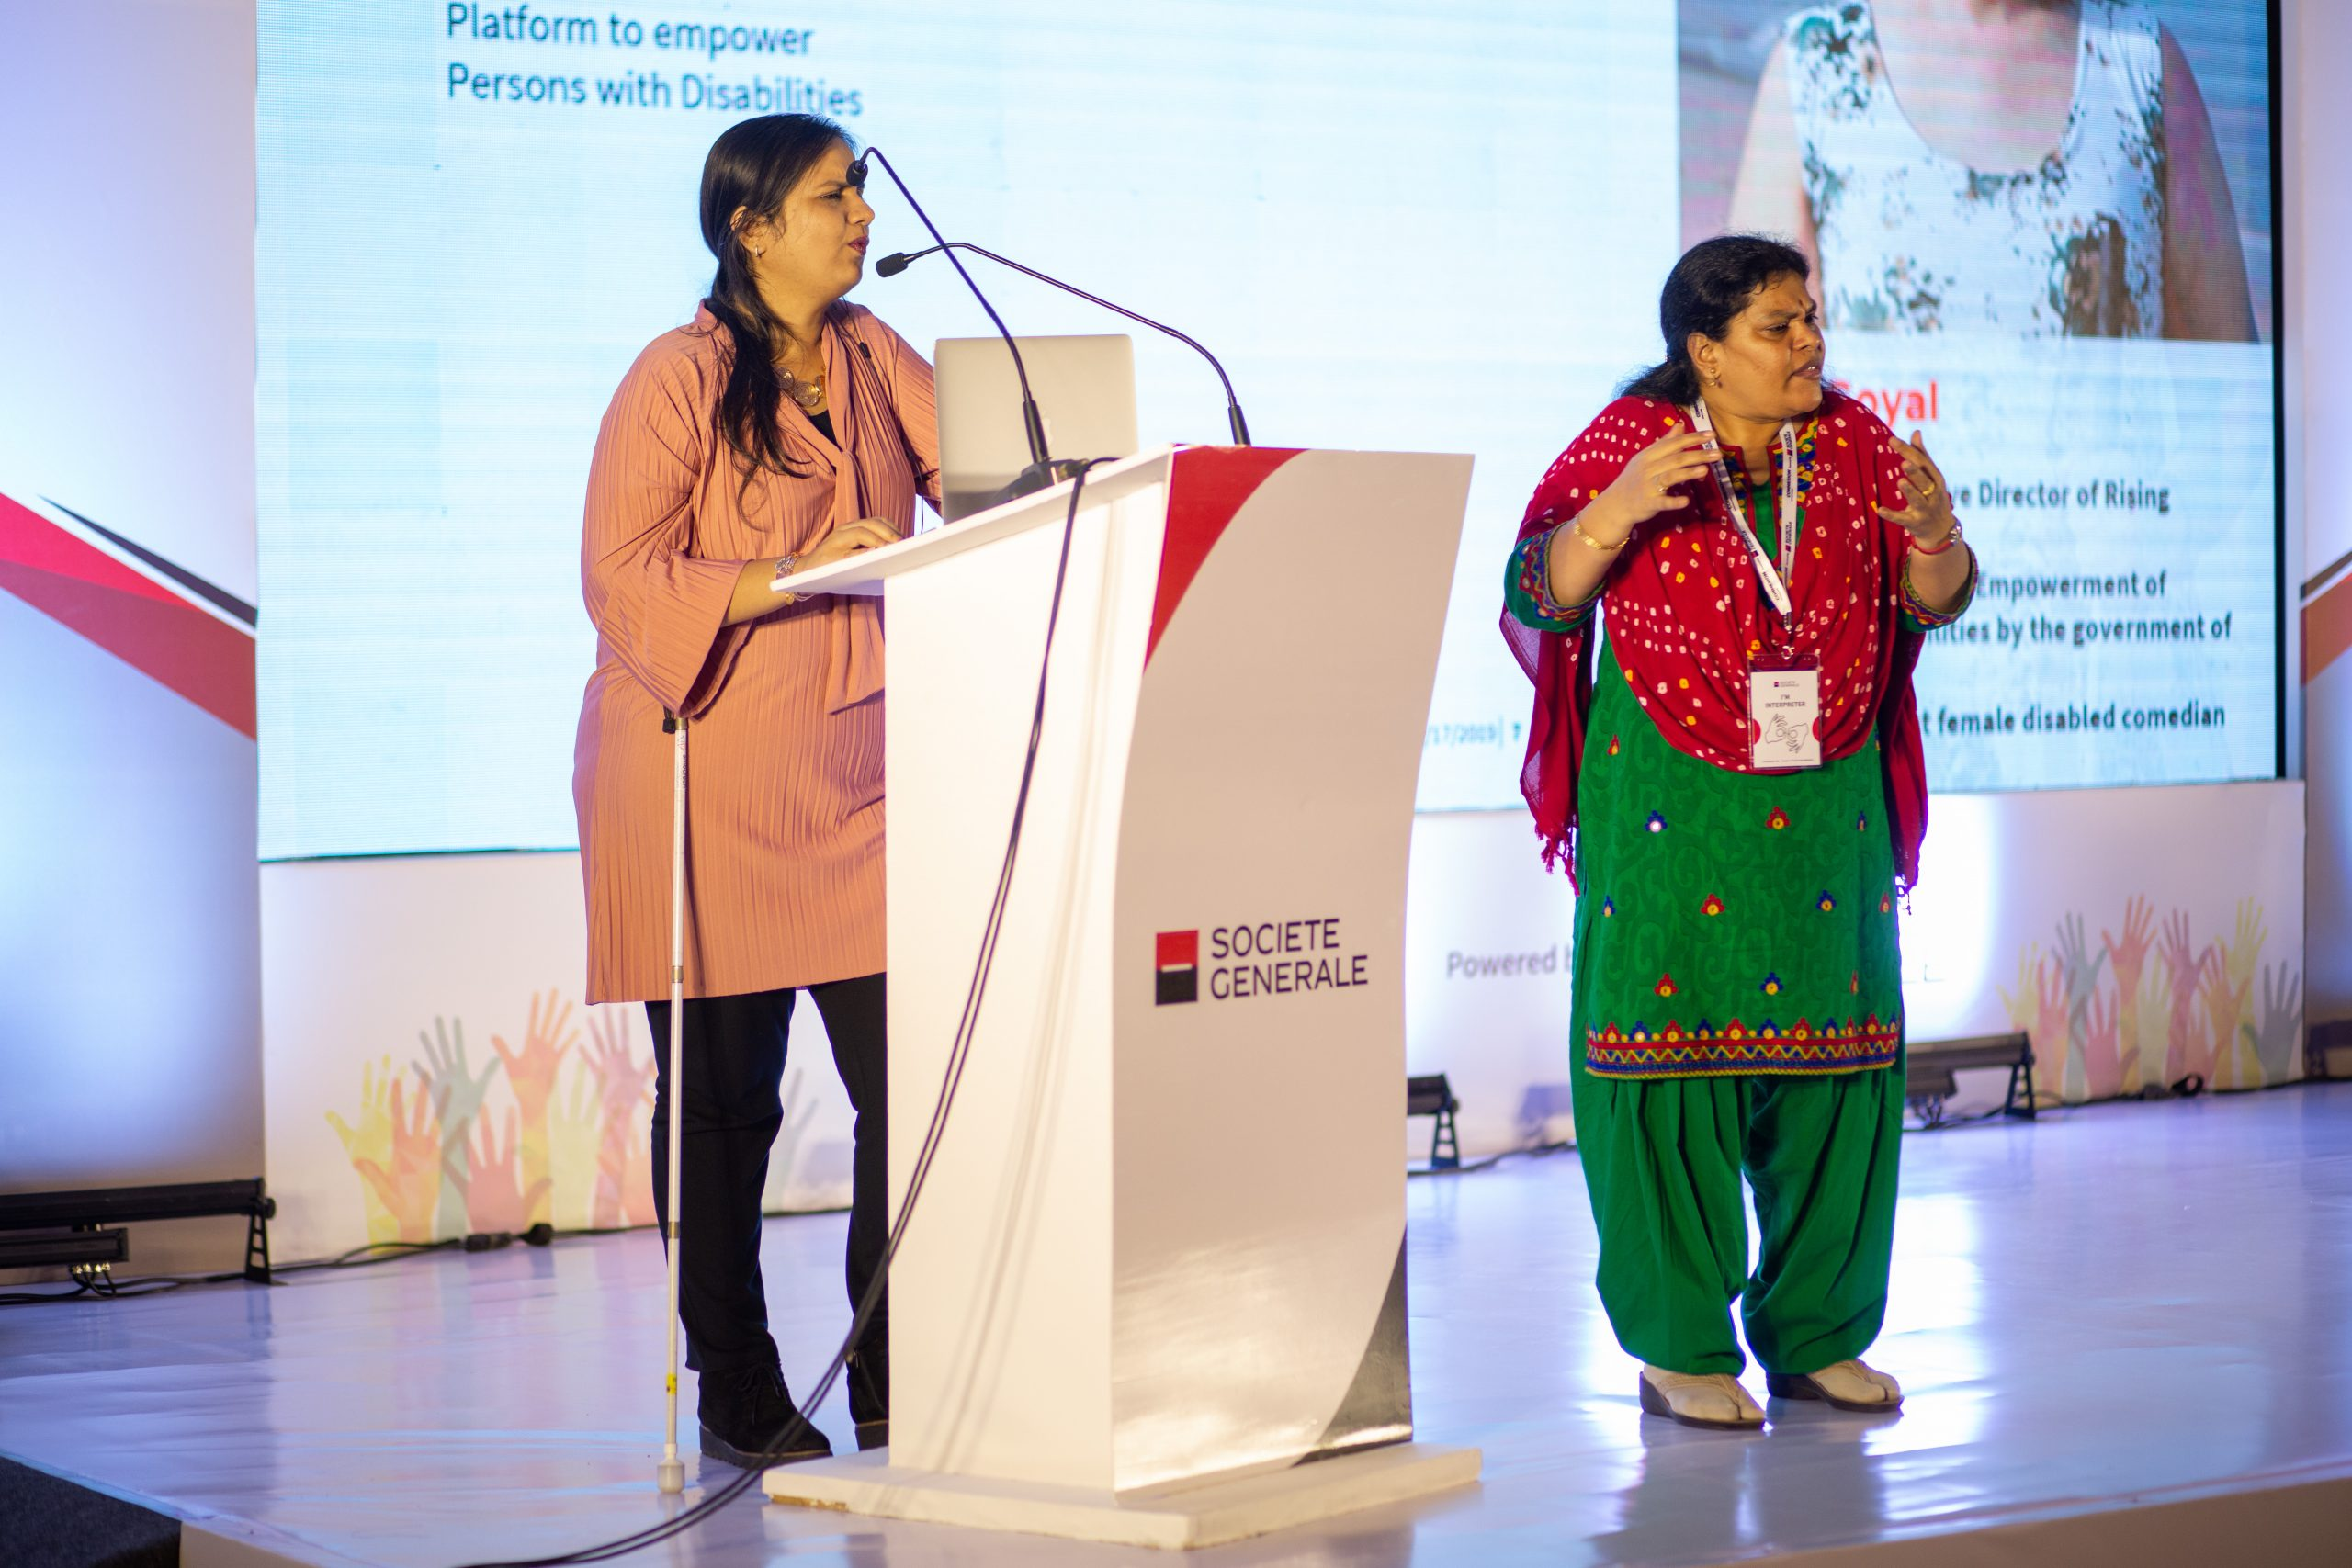 nidhi goyal standing at a white podium. the podium  says 'societe generale'. a sign language interpreter to her left. behind them is a screen with nidhi's photo